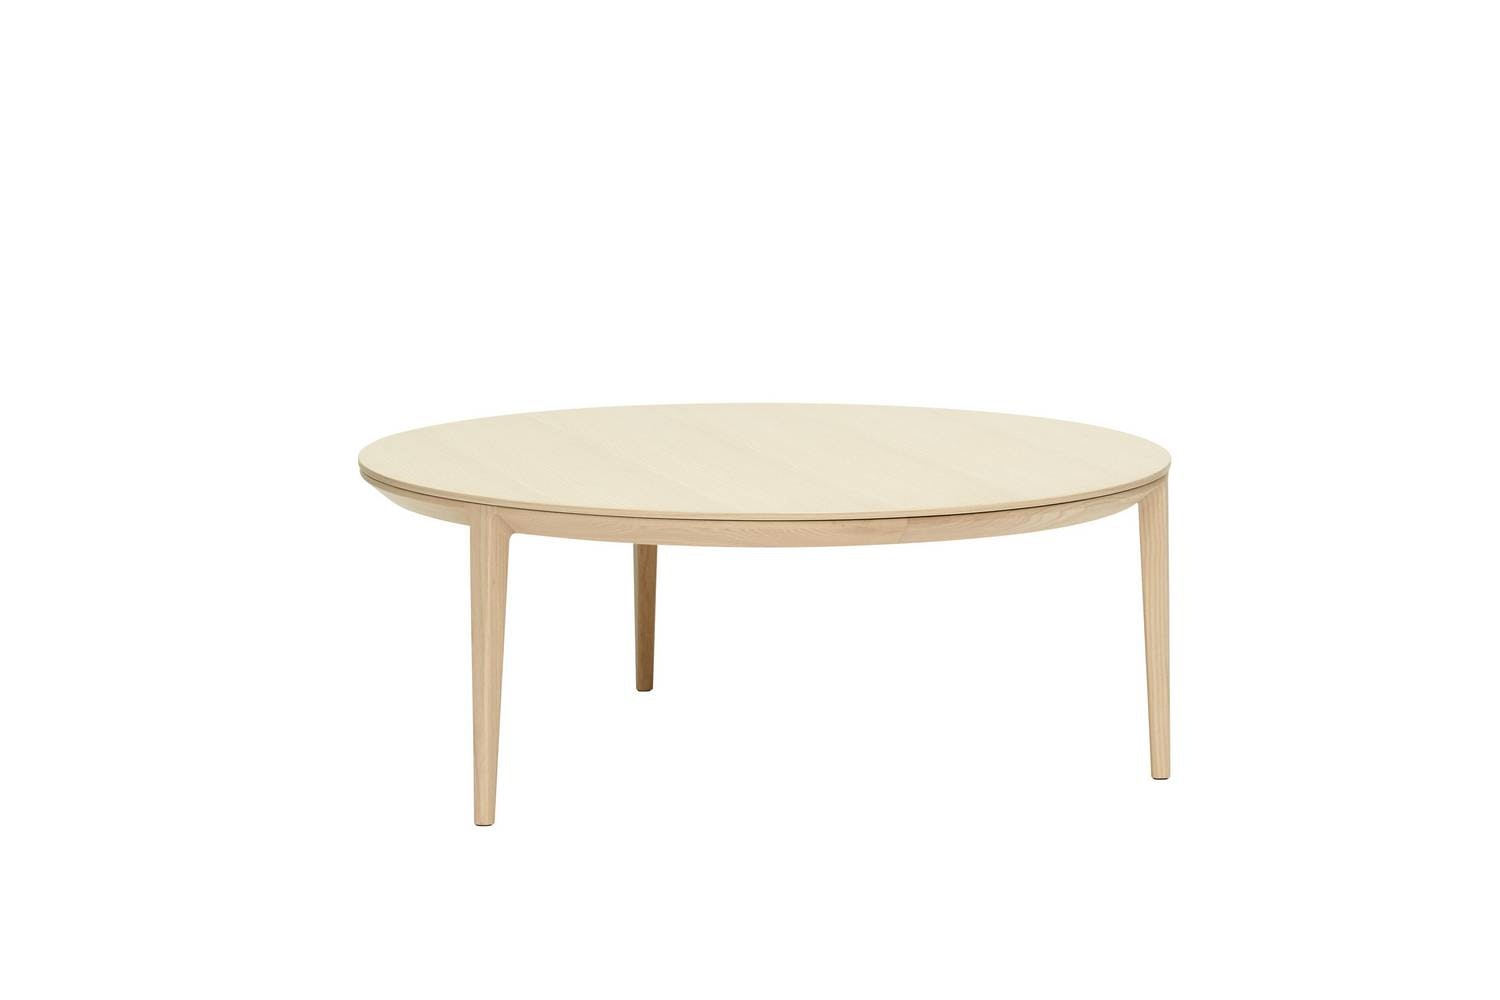 Etoile Coffee Table by Metrica for SP01